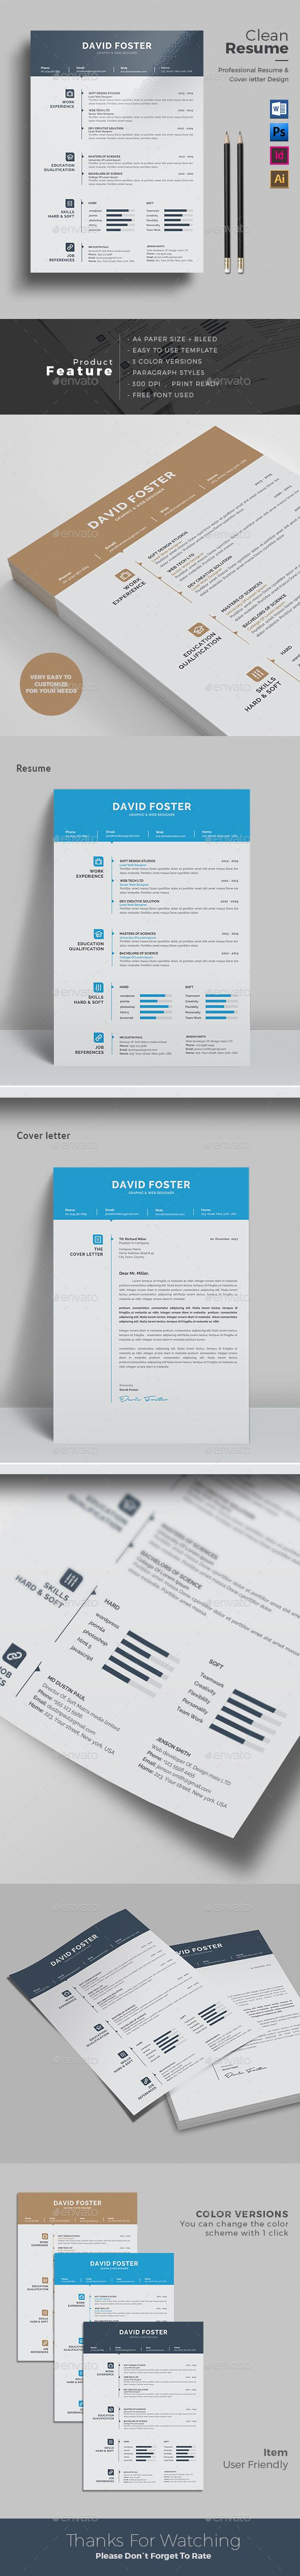 Resume Template PSD, InDesign INDD, AI Illustrator, MS Word. Download here: http://graphicriver.net/item/resume/16527720?ref=ksioks